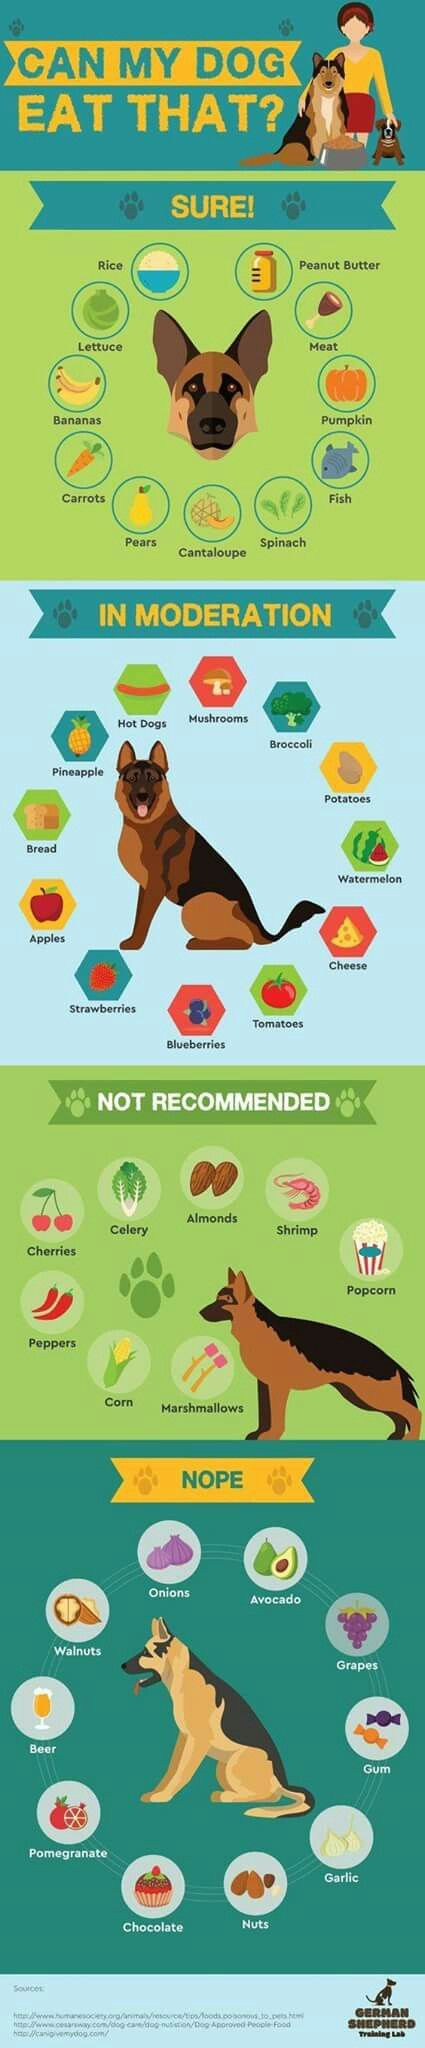 Pin By Maggie Singer On German Shepherds Dog Info Pets Dog Care